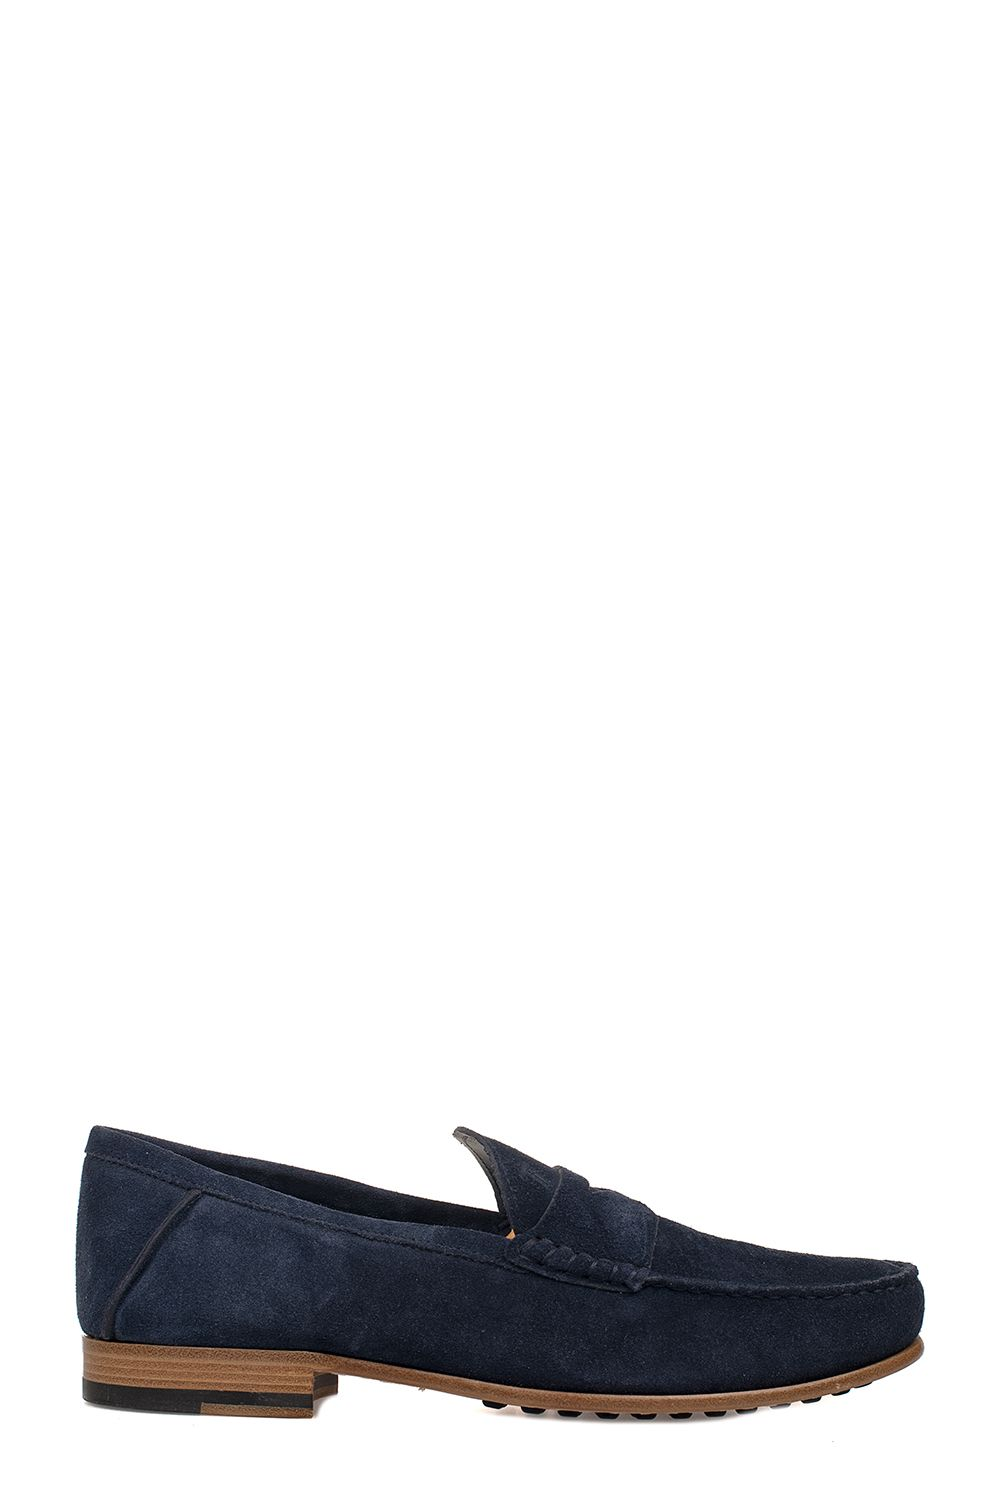 Tod's Blue Suede Loafer